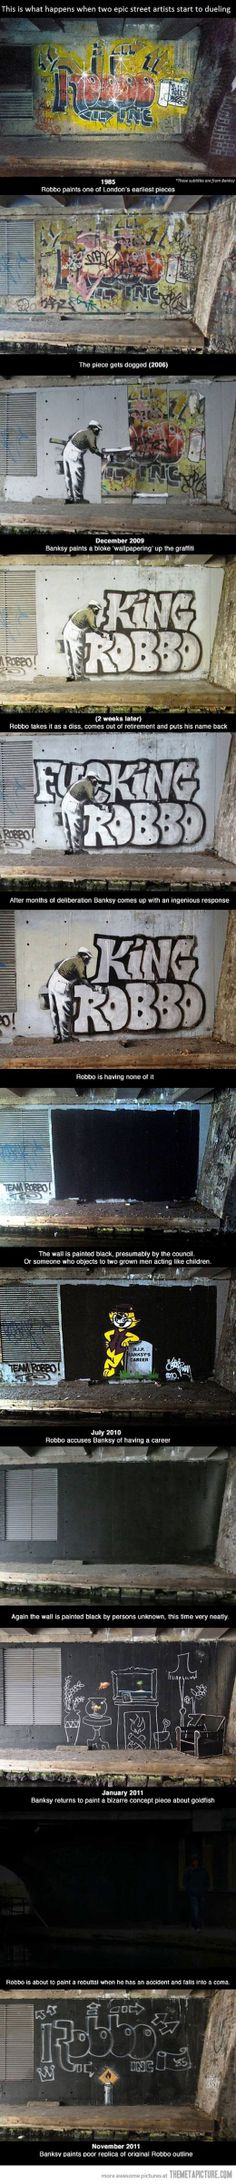 Graffiti War Robbo vs Banksy. I love my banksy :)